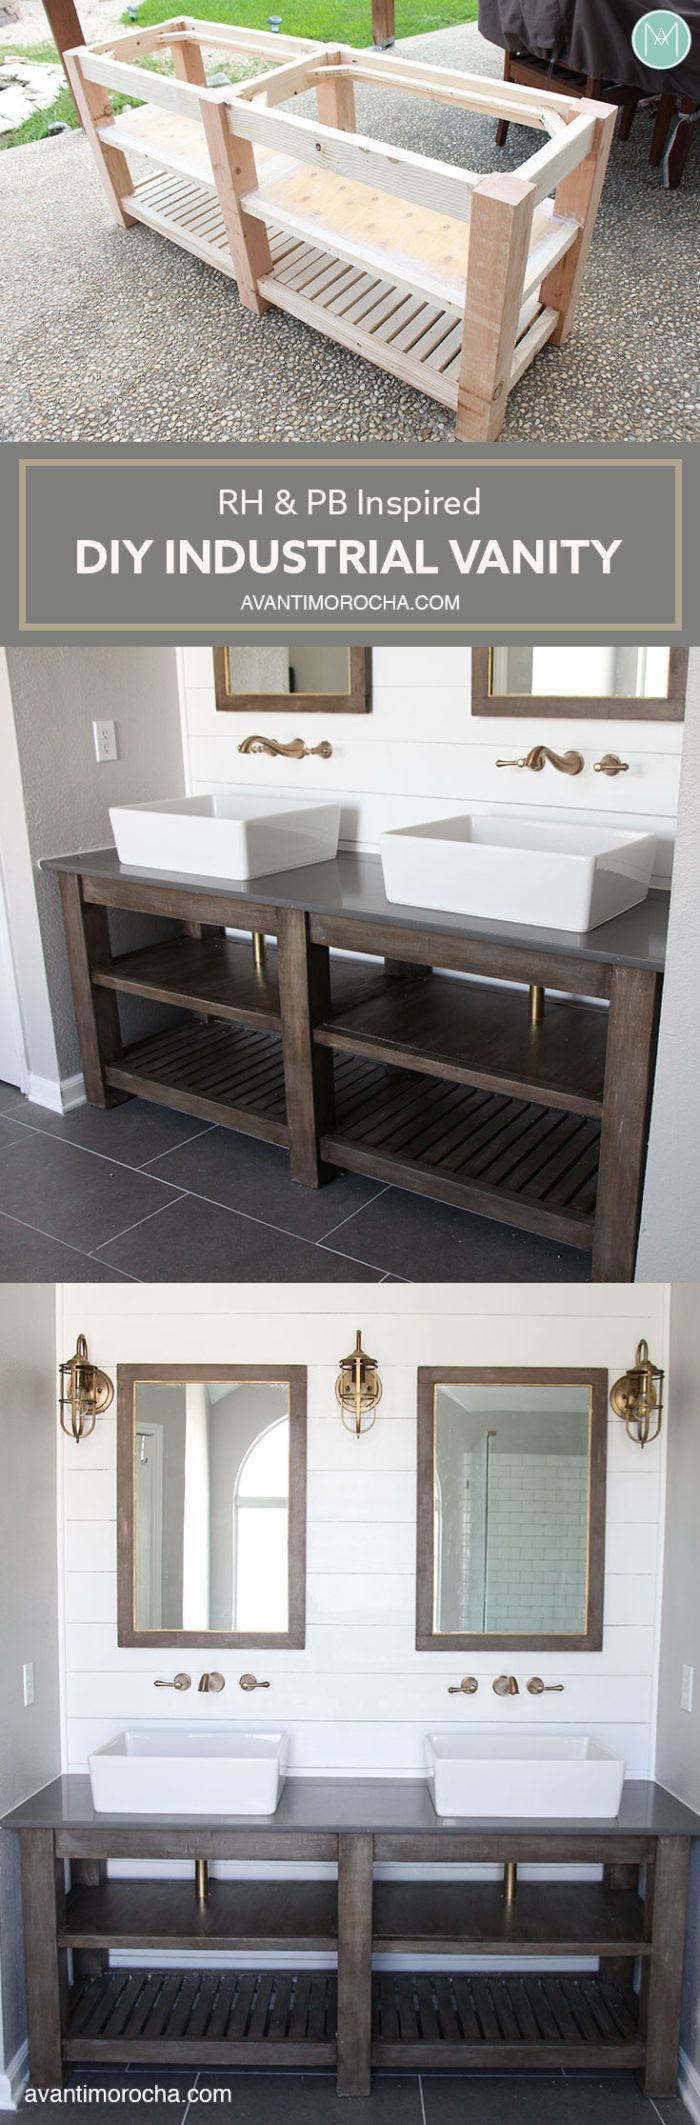 1014 best DIY bathroom furniture images on Pinterest | Bathroom ...